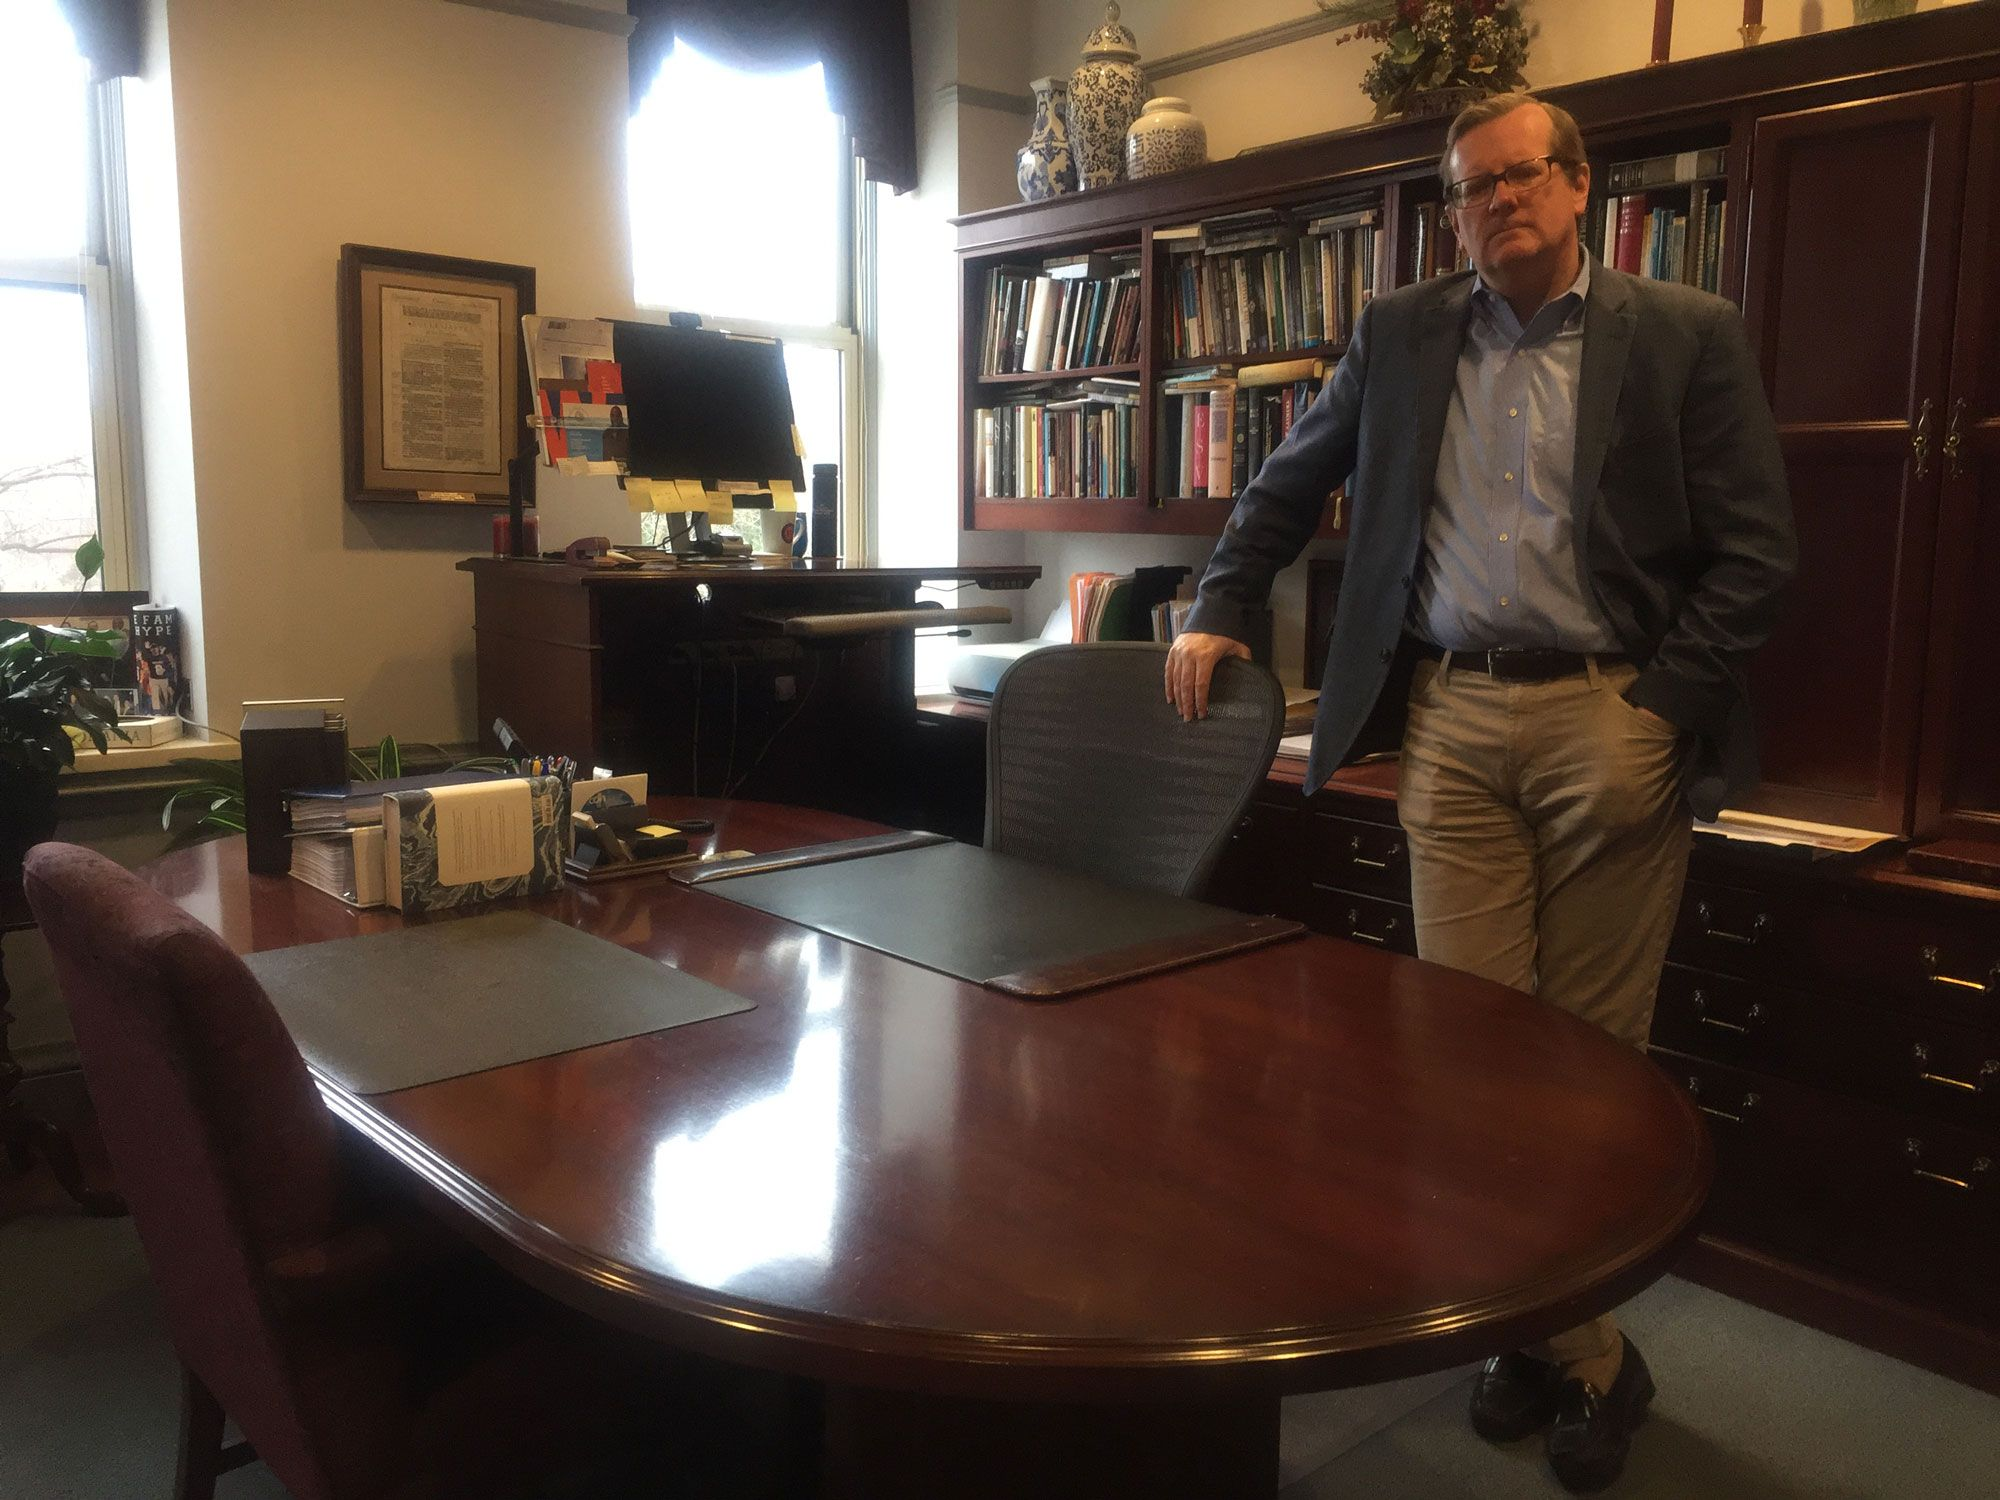 President Philip Ryken captures his last moments in the office before he heads home for shelter-in-place.